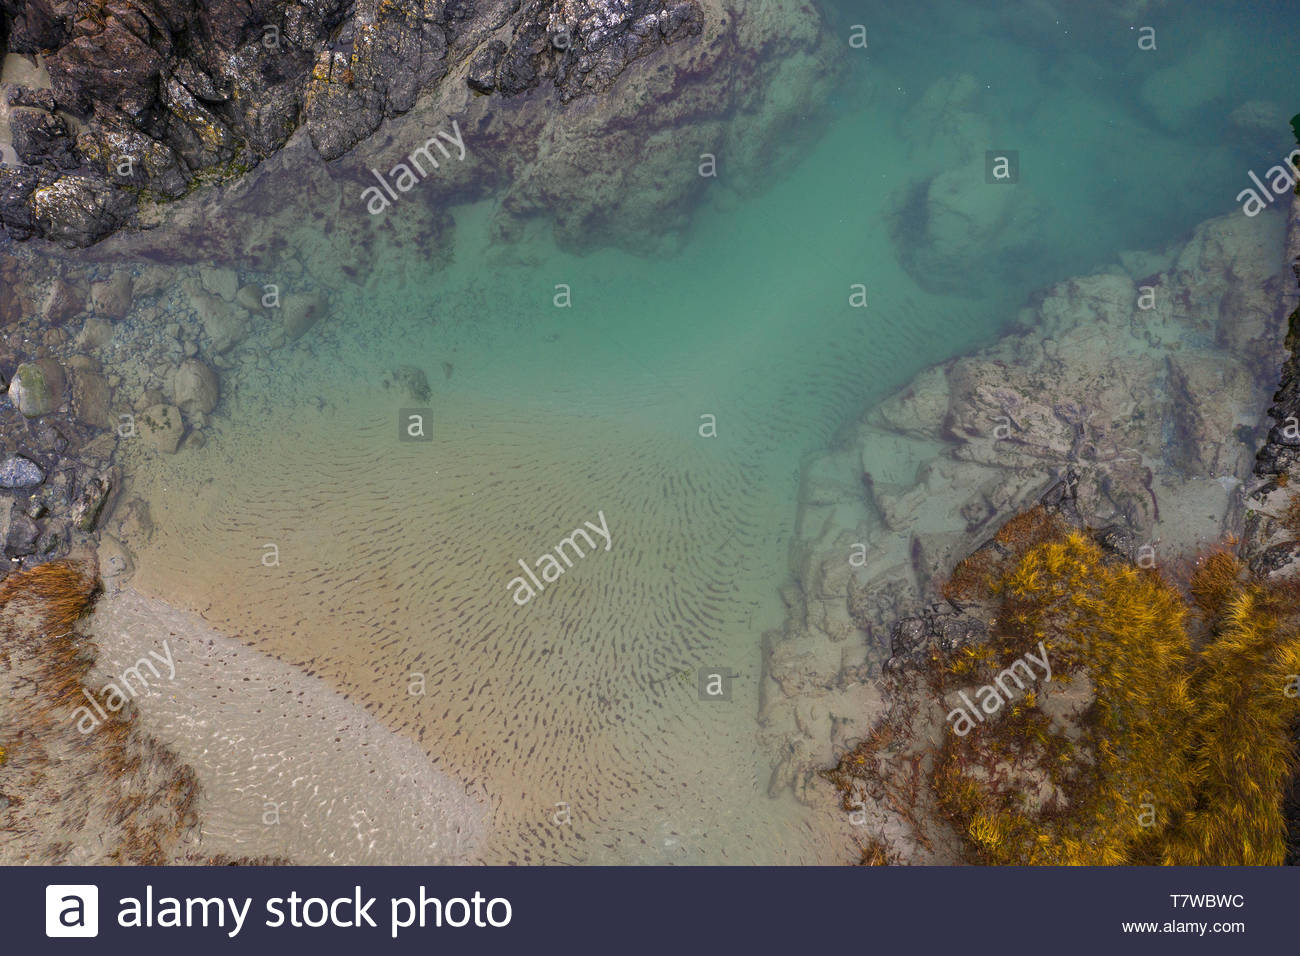 Drone point of view rugged ocean tidal pool, British Columbia, Canada - Stock Image